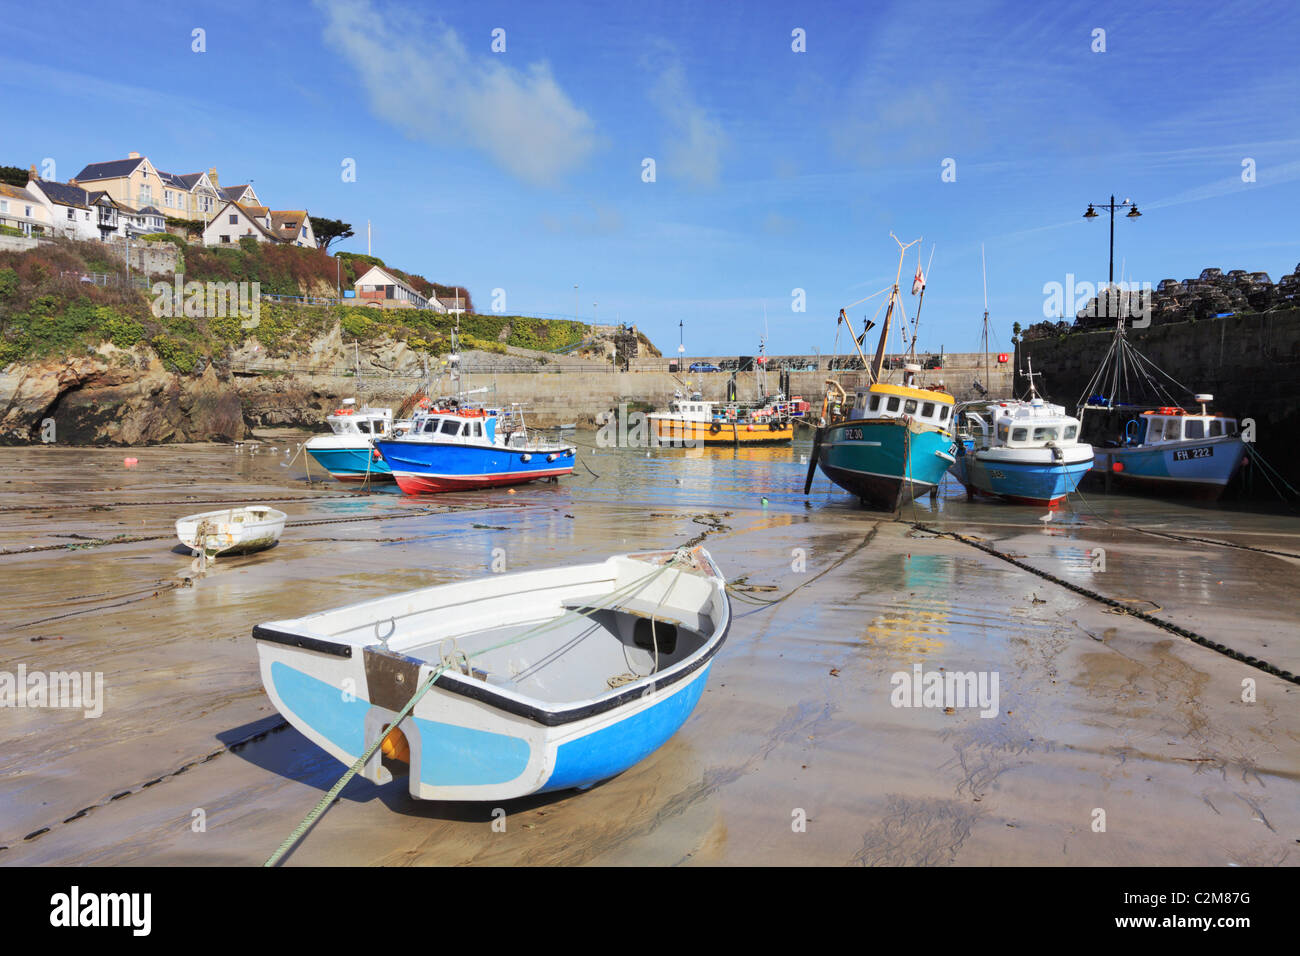 Newquay Harbour captured at low tide - Stock Image